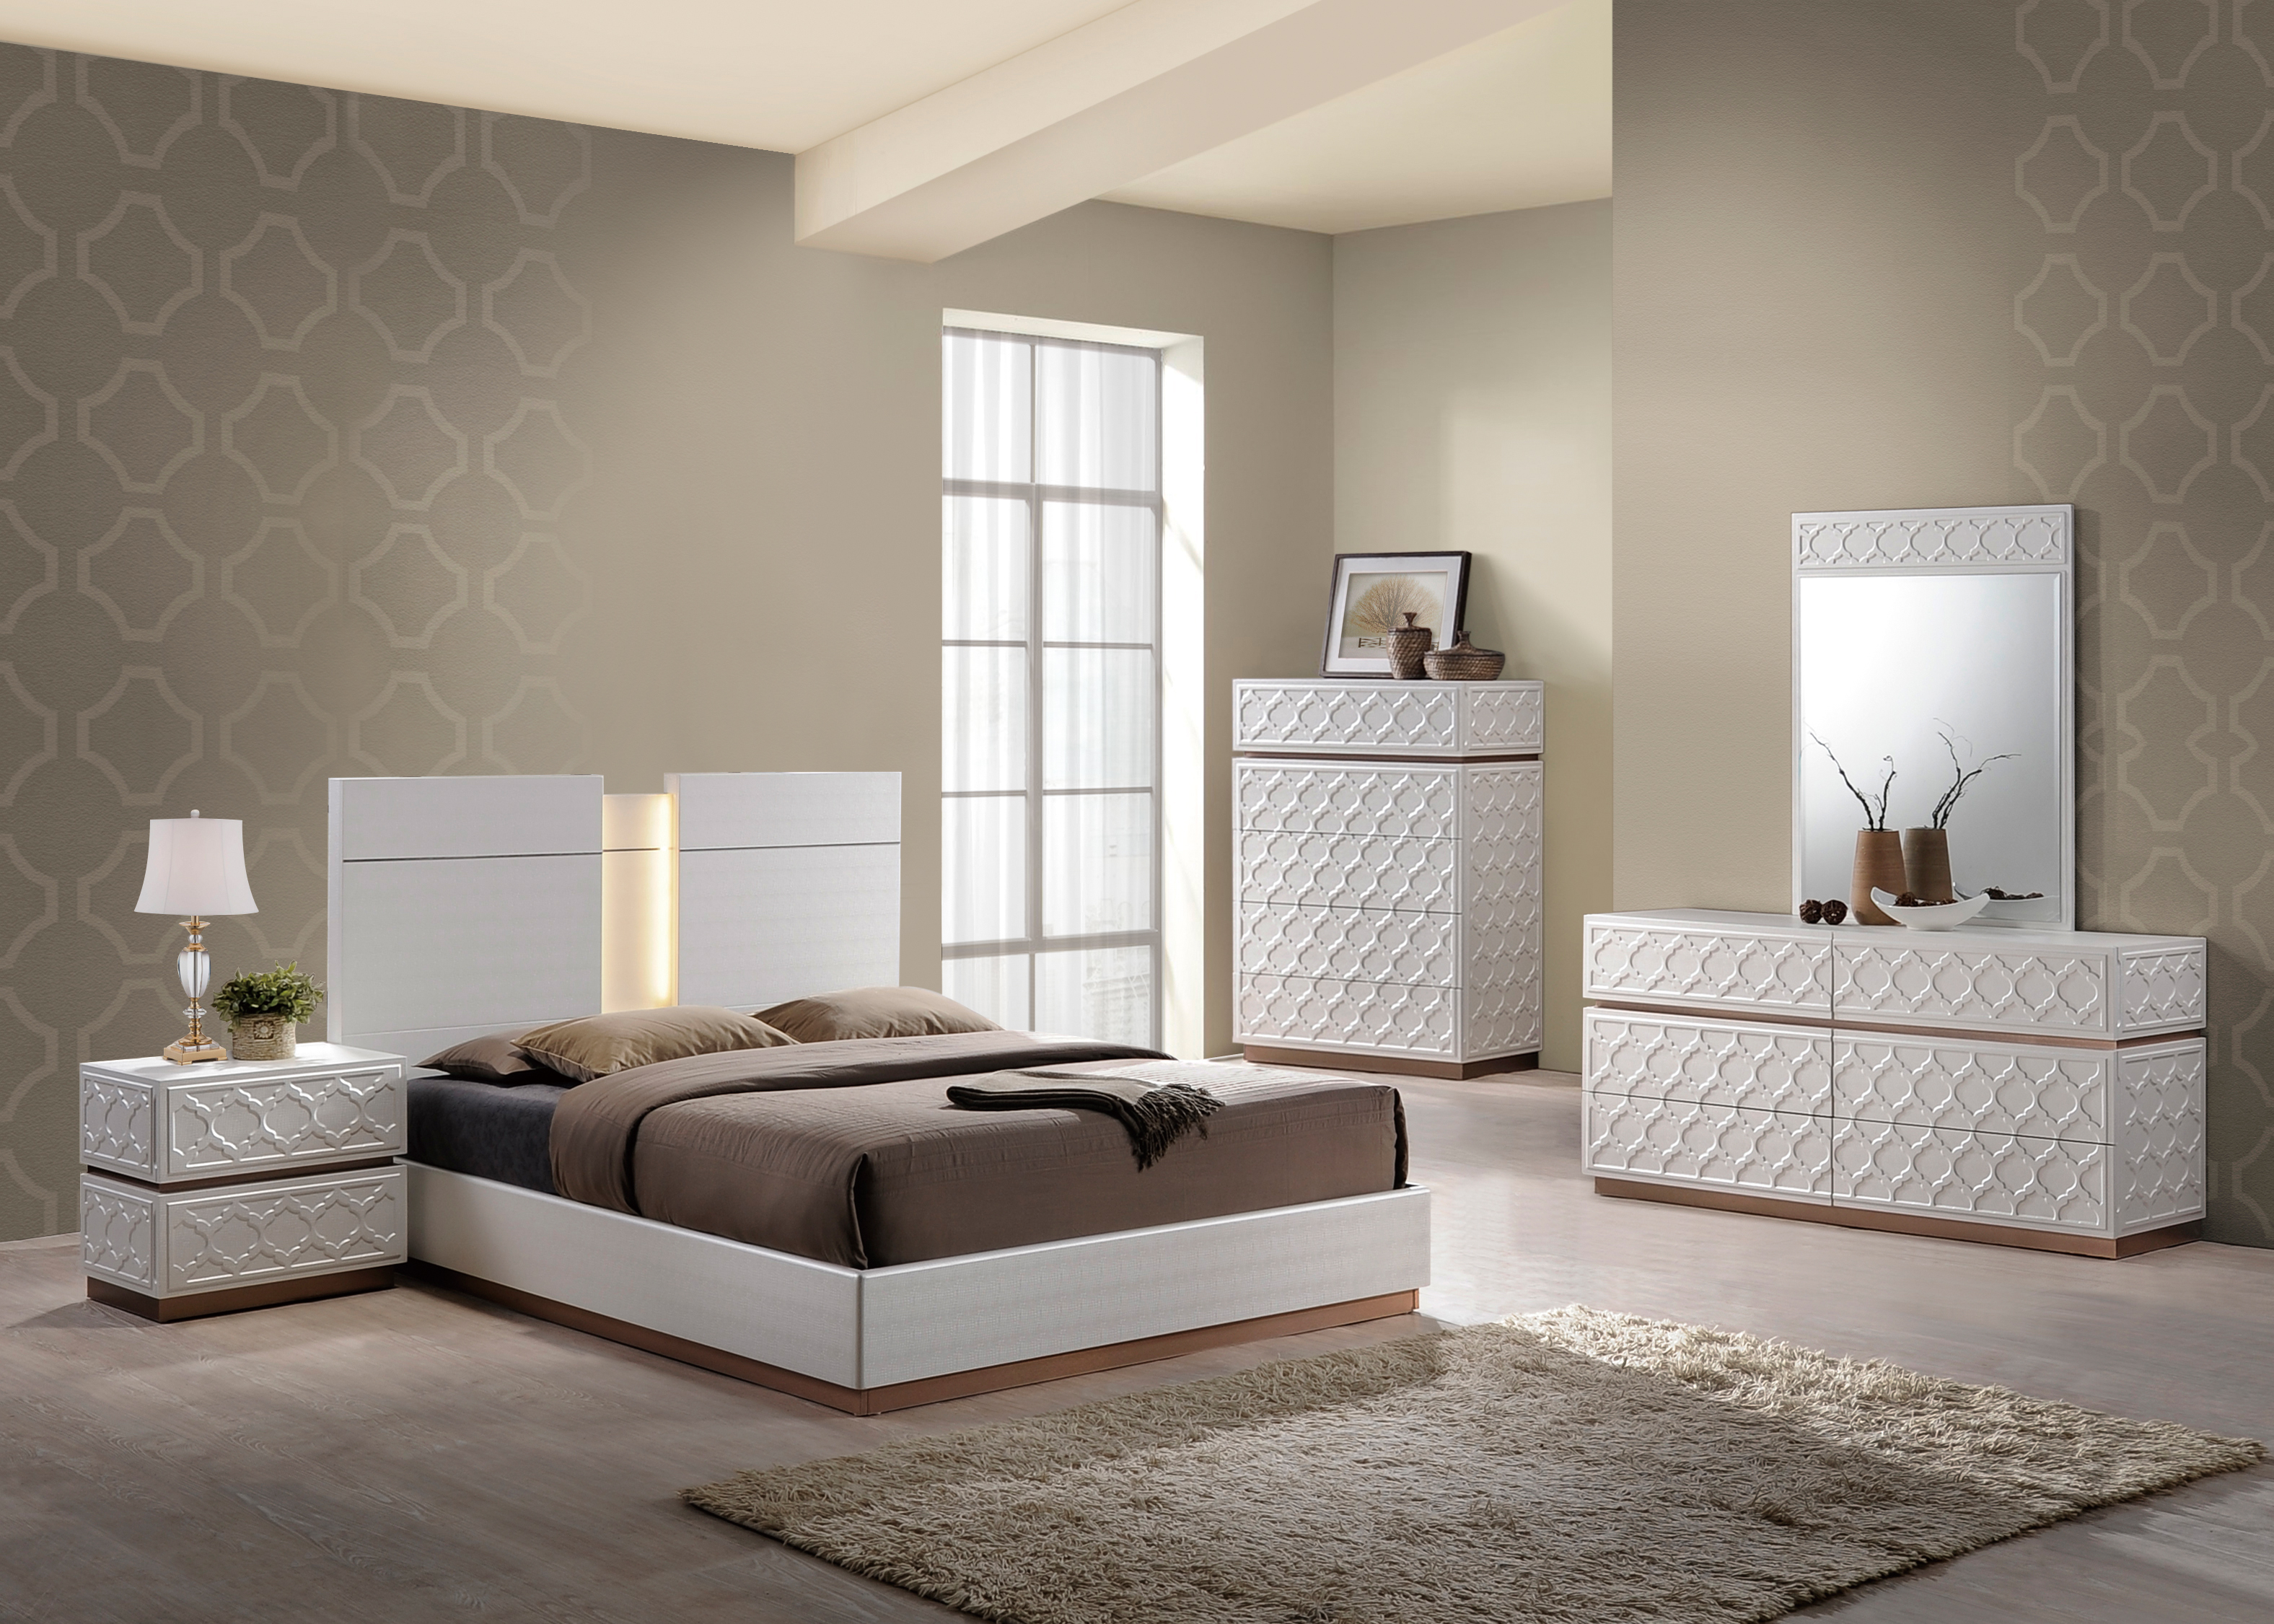 Emma Leather Cream Bedroom Set by Global Furniture